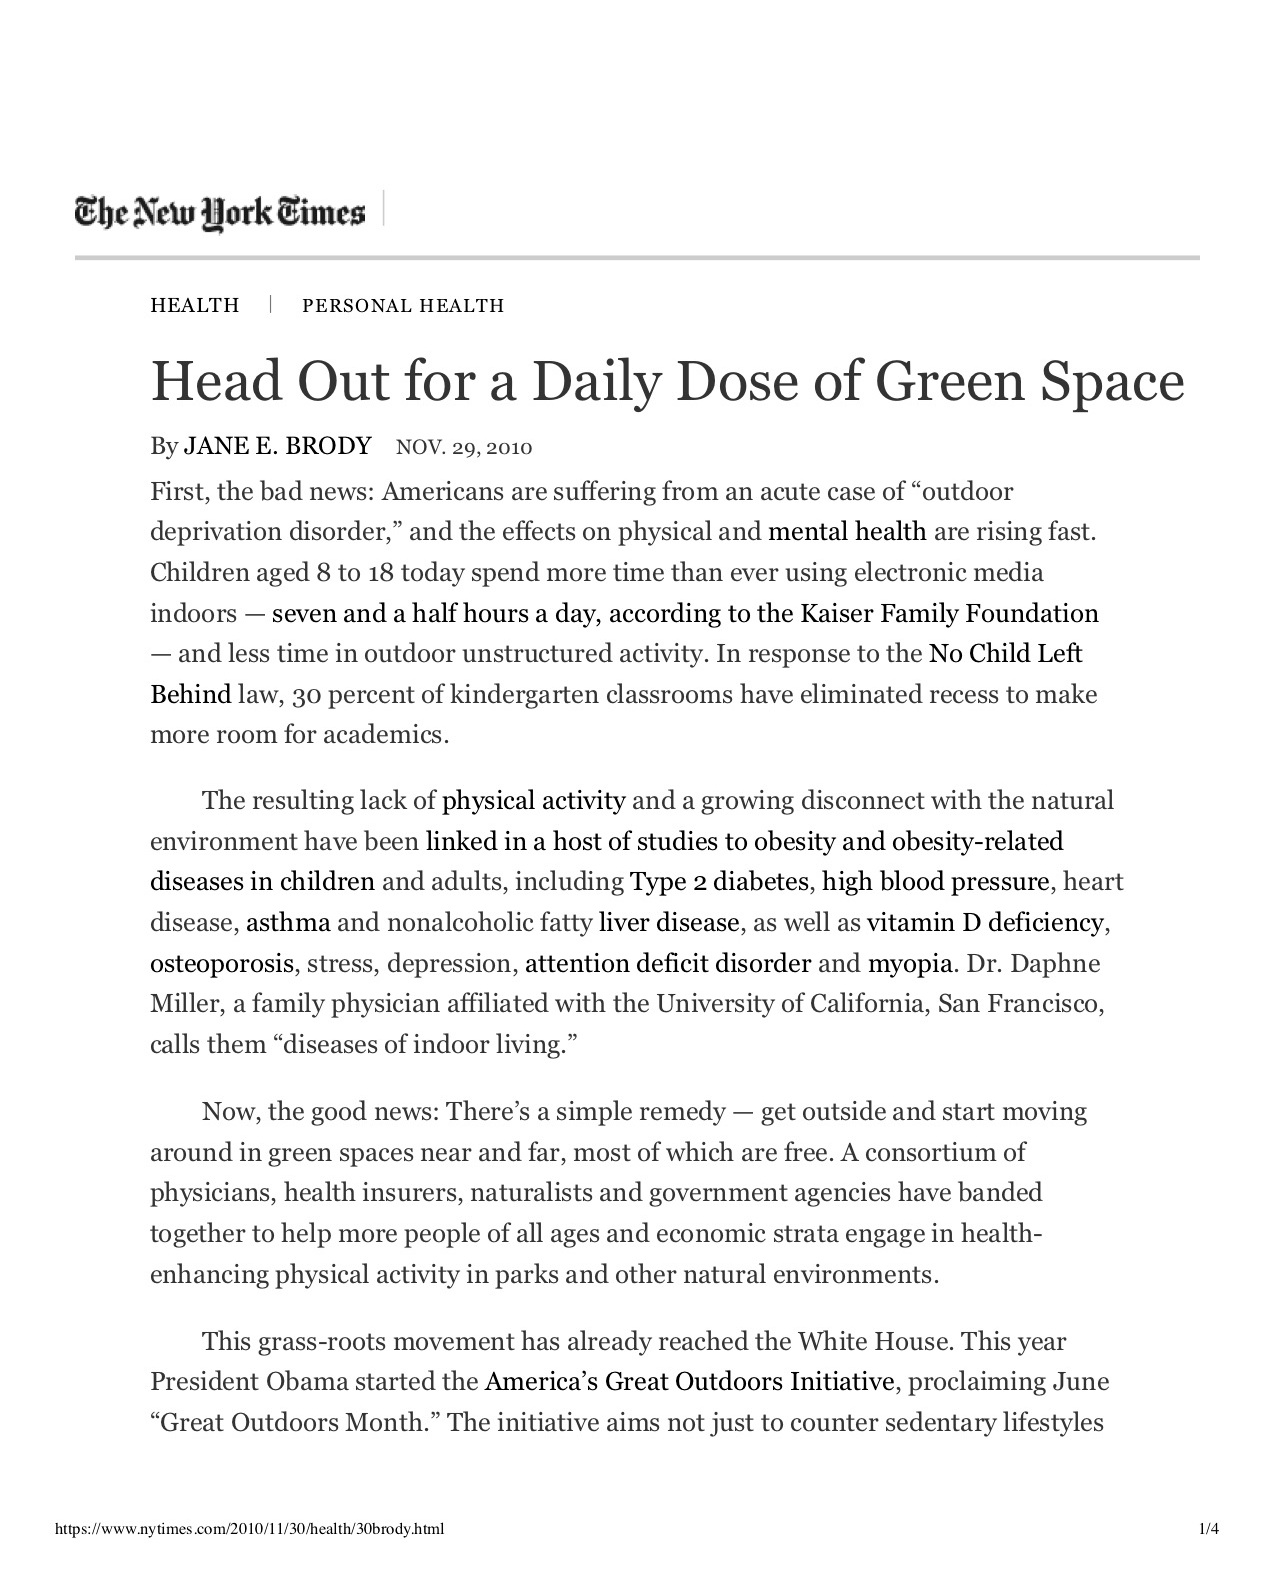 Get+a+Daily+Dose+of+Green+Space+-+Personal+Health+-+The+New+York+Times.jpg